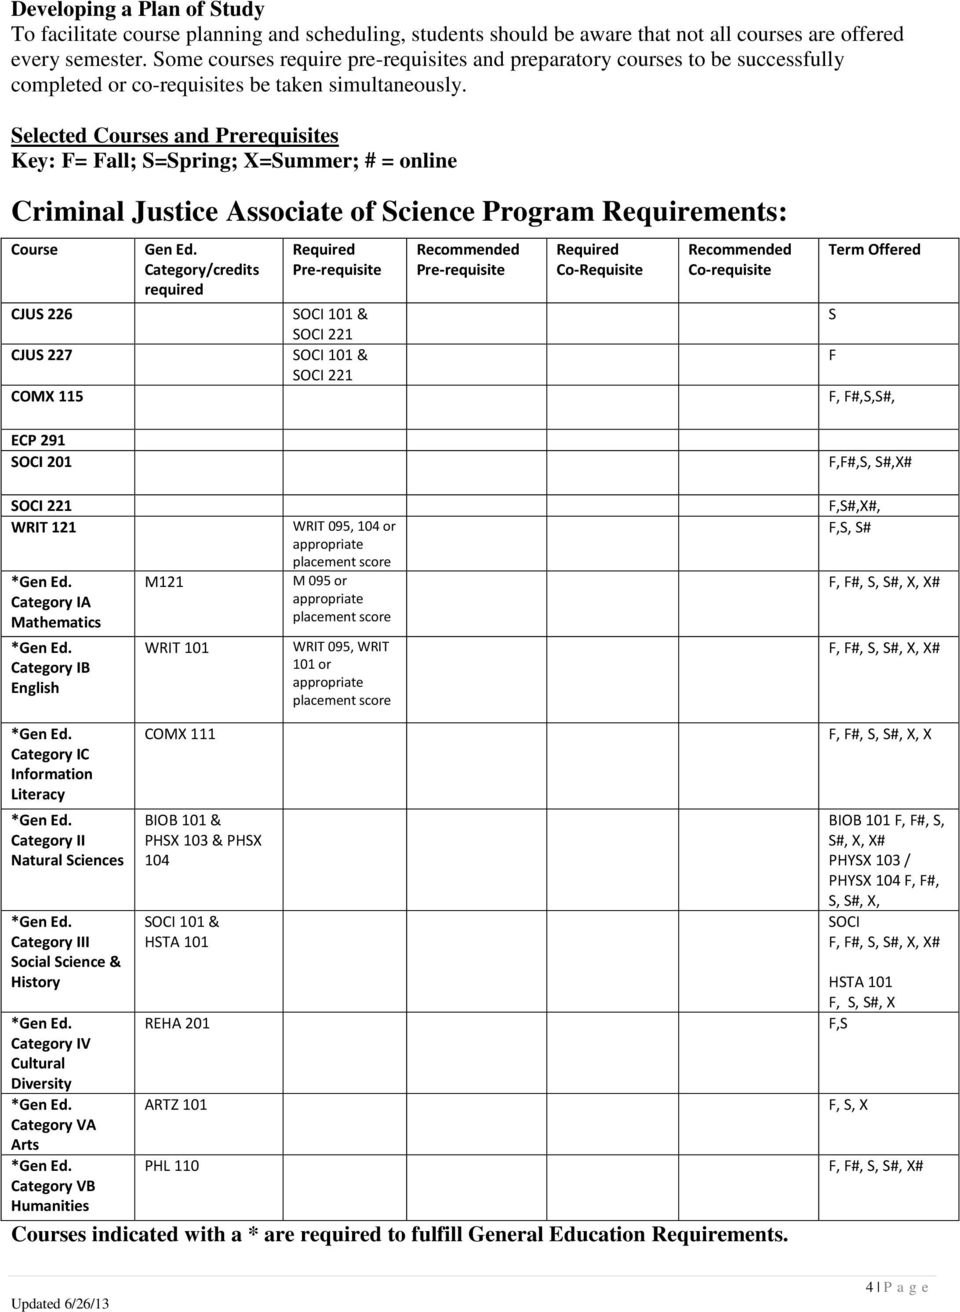 Selected Courses and Prerequisites Key: F= Fall; S=Spring; X=Summer; # = online Criminal Justice Associate of Science Program Requirements: Course CJUS 226 CJUS 227 COMX 115 ECP 291 SOCI 201 Gen Ed.